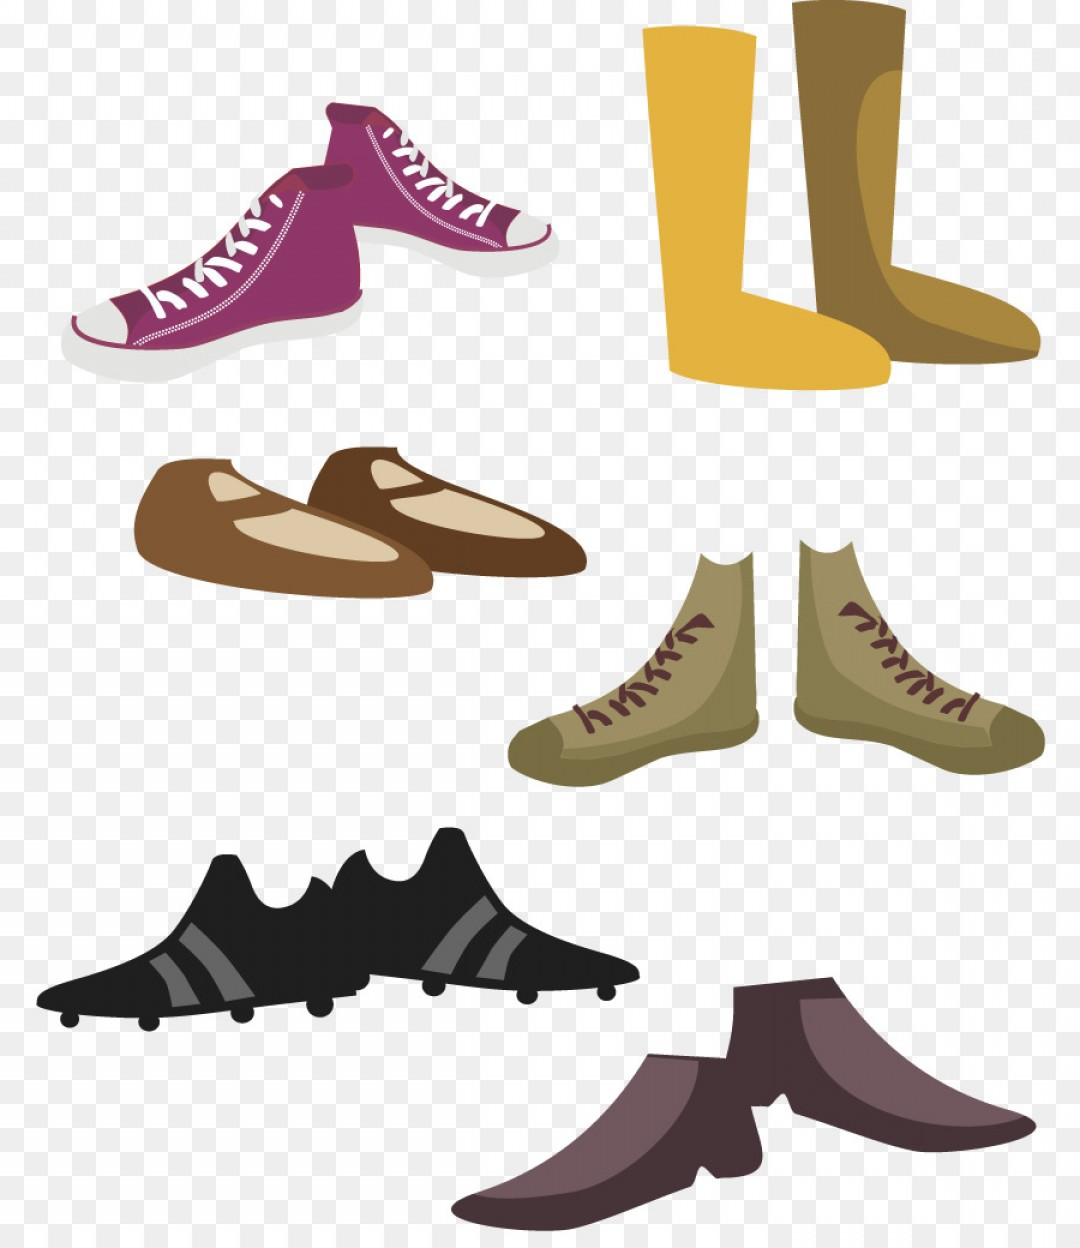 1080x1248 Png Ballet Shoe Cartoon Clothing Vector Flat Shoes Col Lazttweet